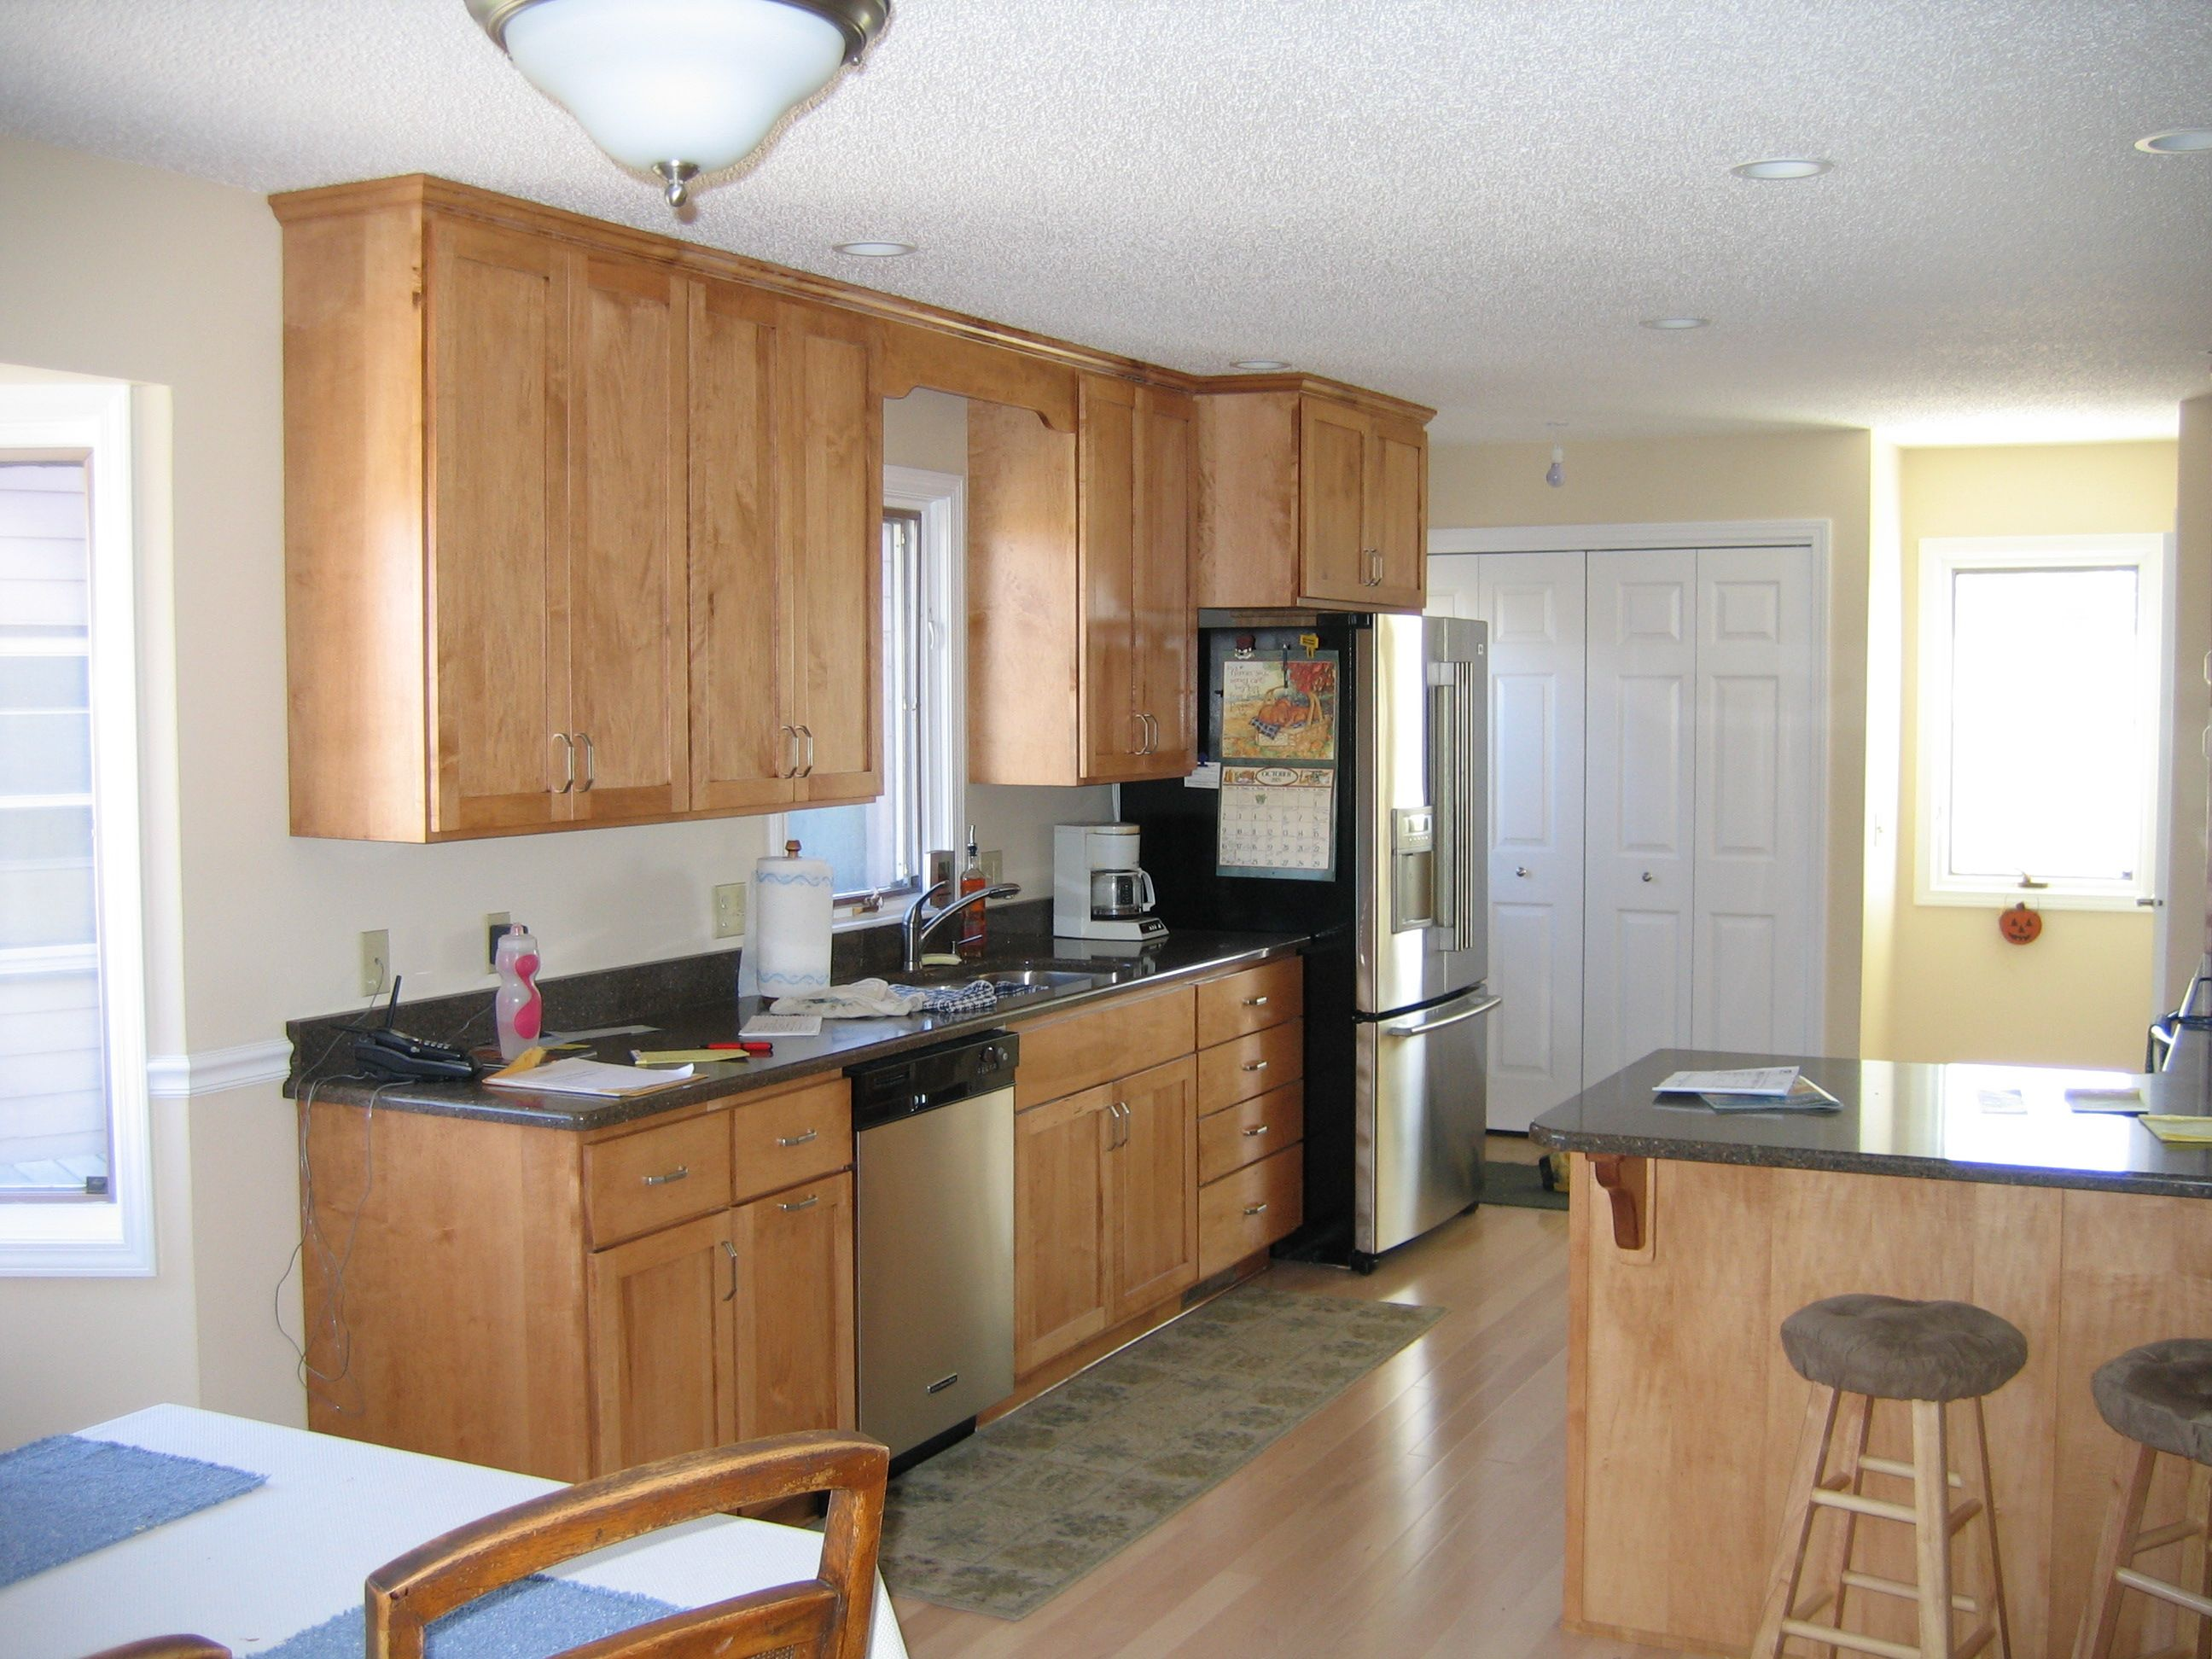 Kitchen Colors With Natural Maple Cabinets Http Www: kitchen colors with natural wood cabinets